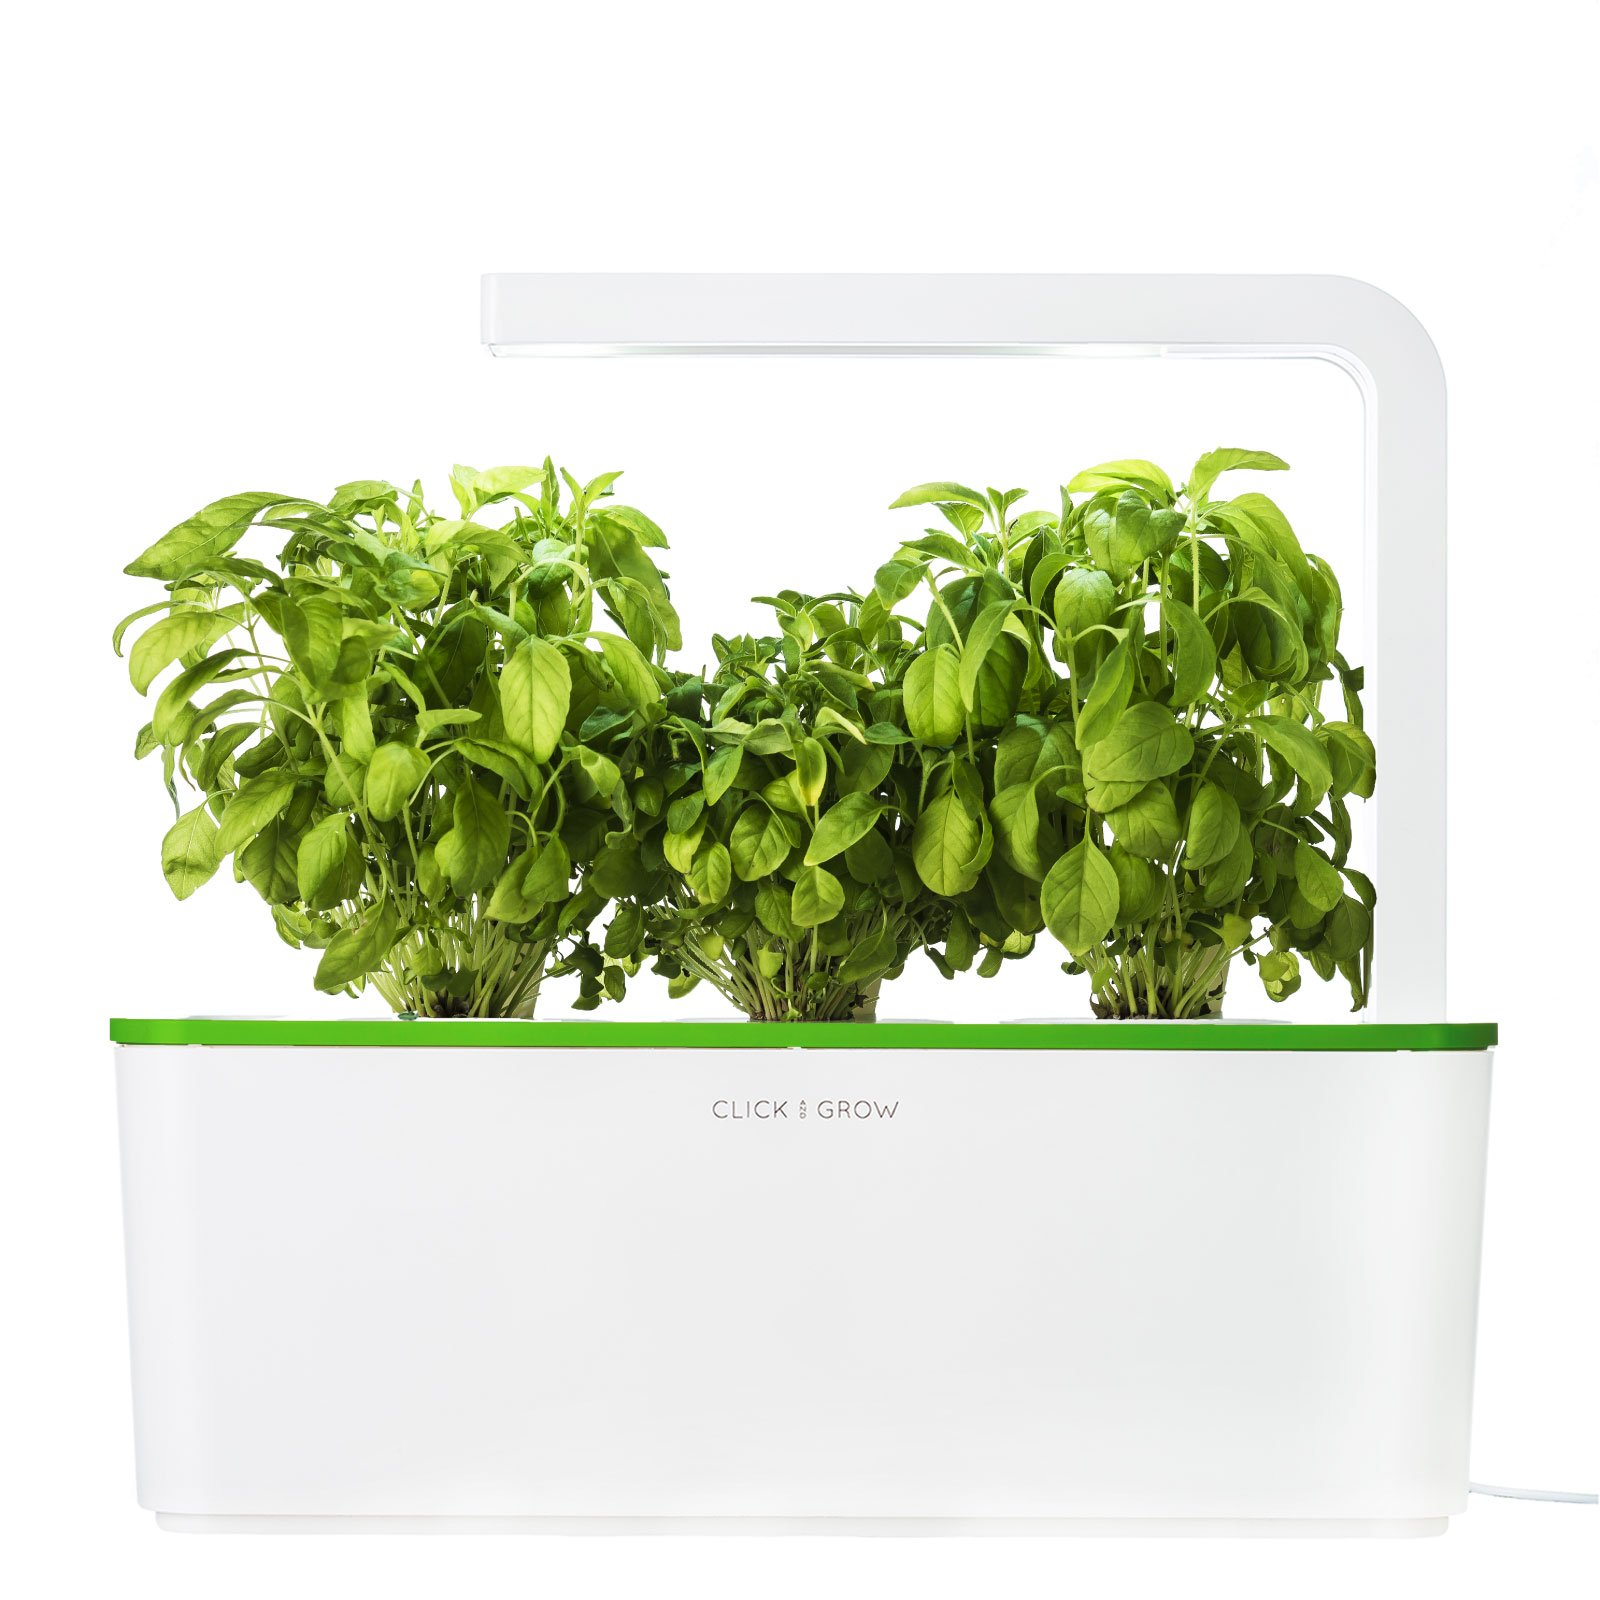 Click & Grow Indoor Smart Fresh Herb Garden Kit With 3 Basil Cartridges & Kiwi Green Lid | Self Watering Planter & Patented Nano-Tech Medium For Plant Growth by Click and Grow